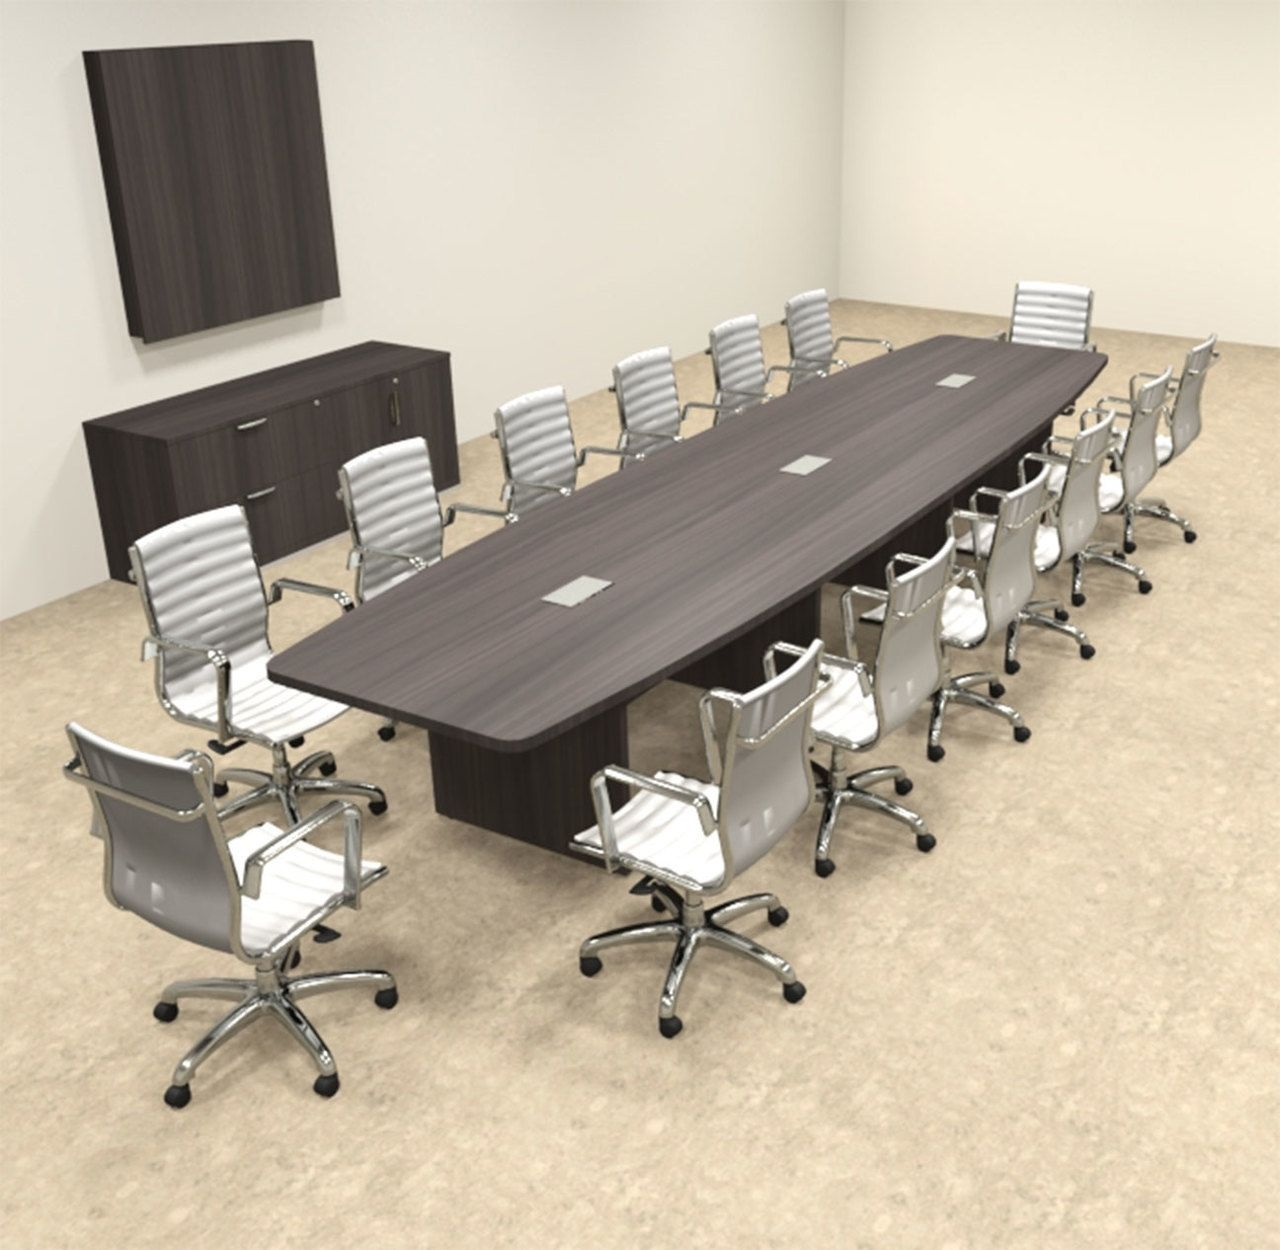 Modern Boat Shapedd Feet Conference Table OFCONC Modern - 16 foot conference room table